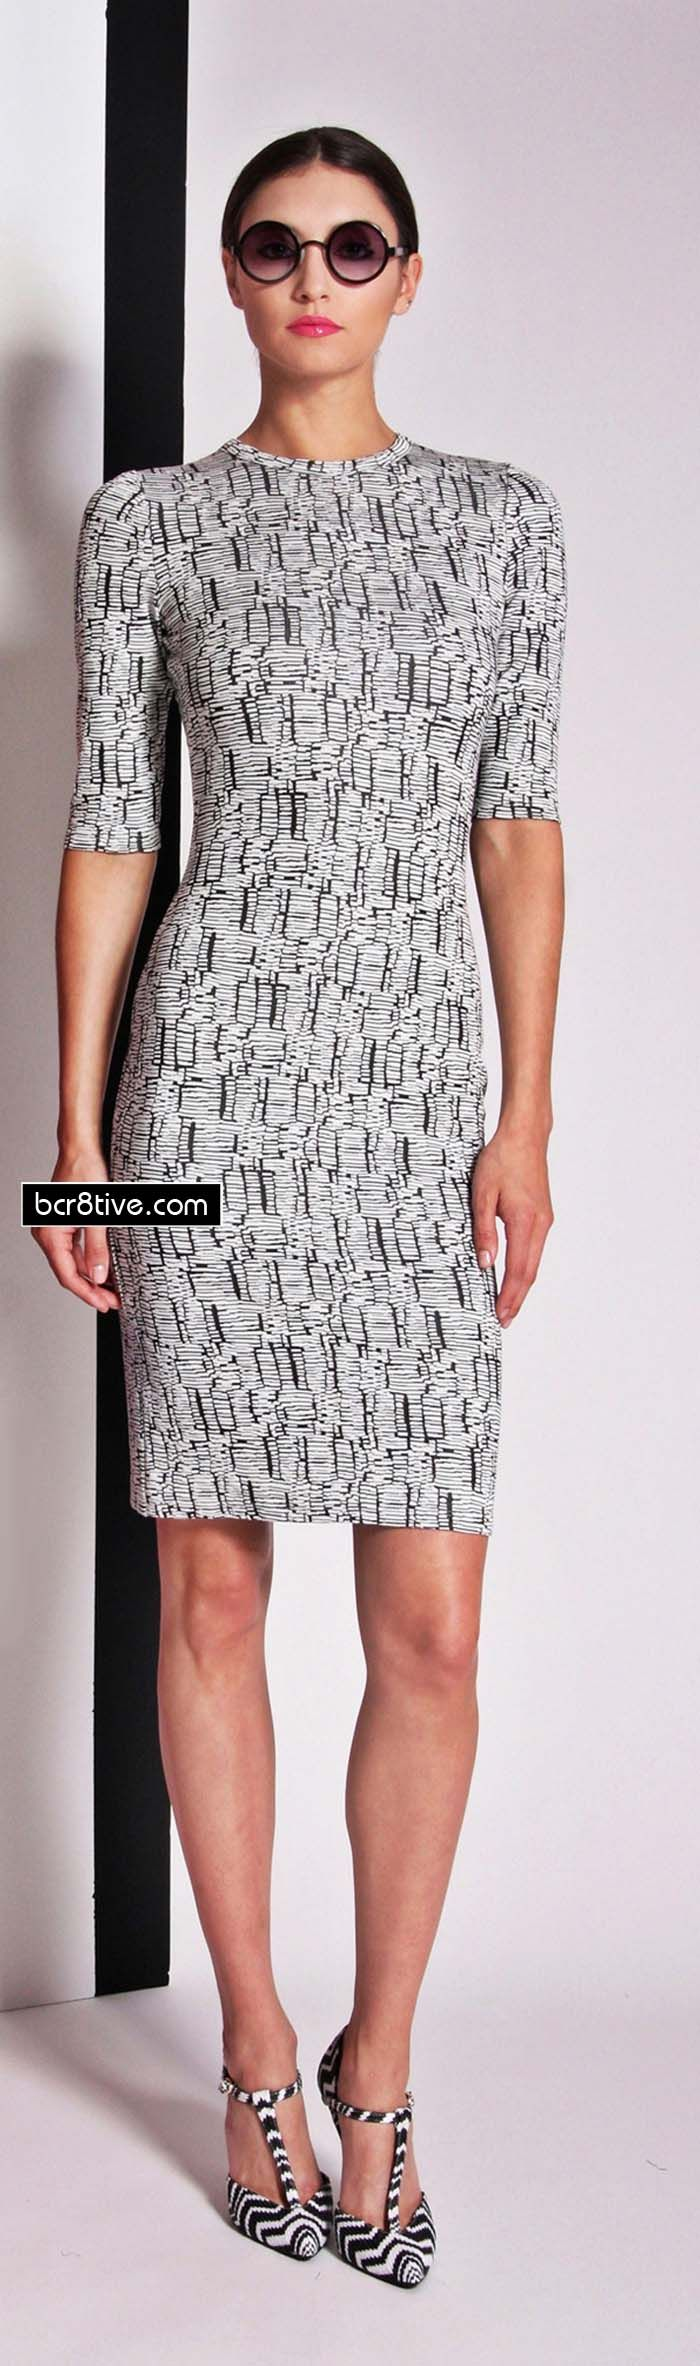 Subtle black and white print on a shift/sheath dress. Round neck and elbow length sleeves. Christian Siriano Resort 2014.